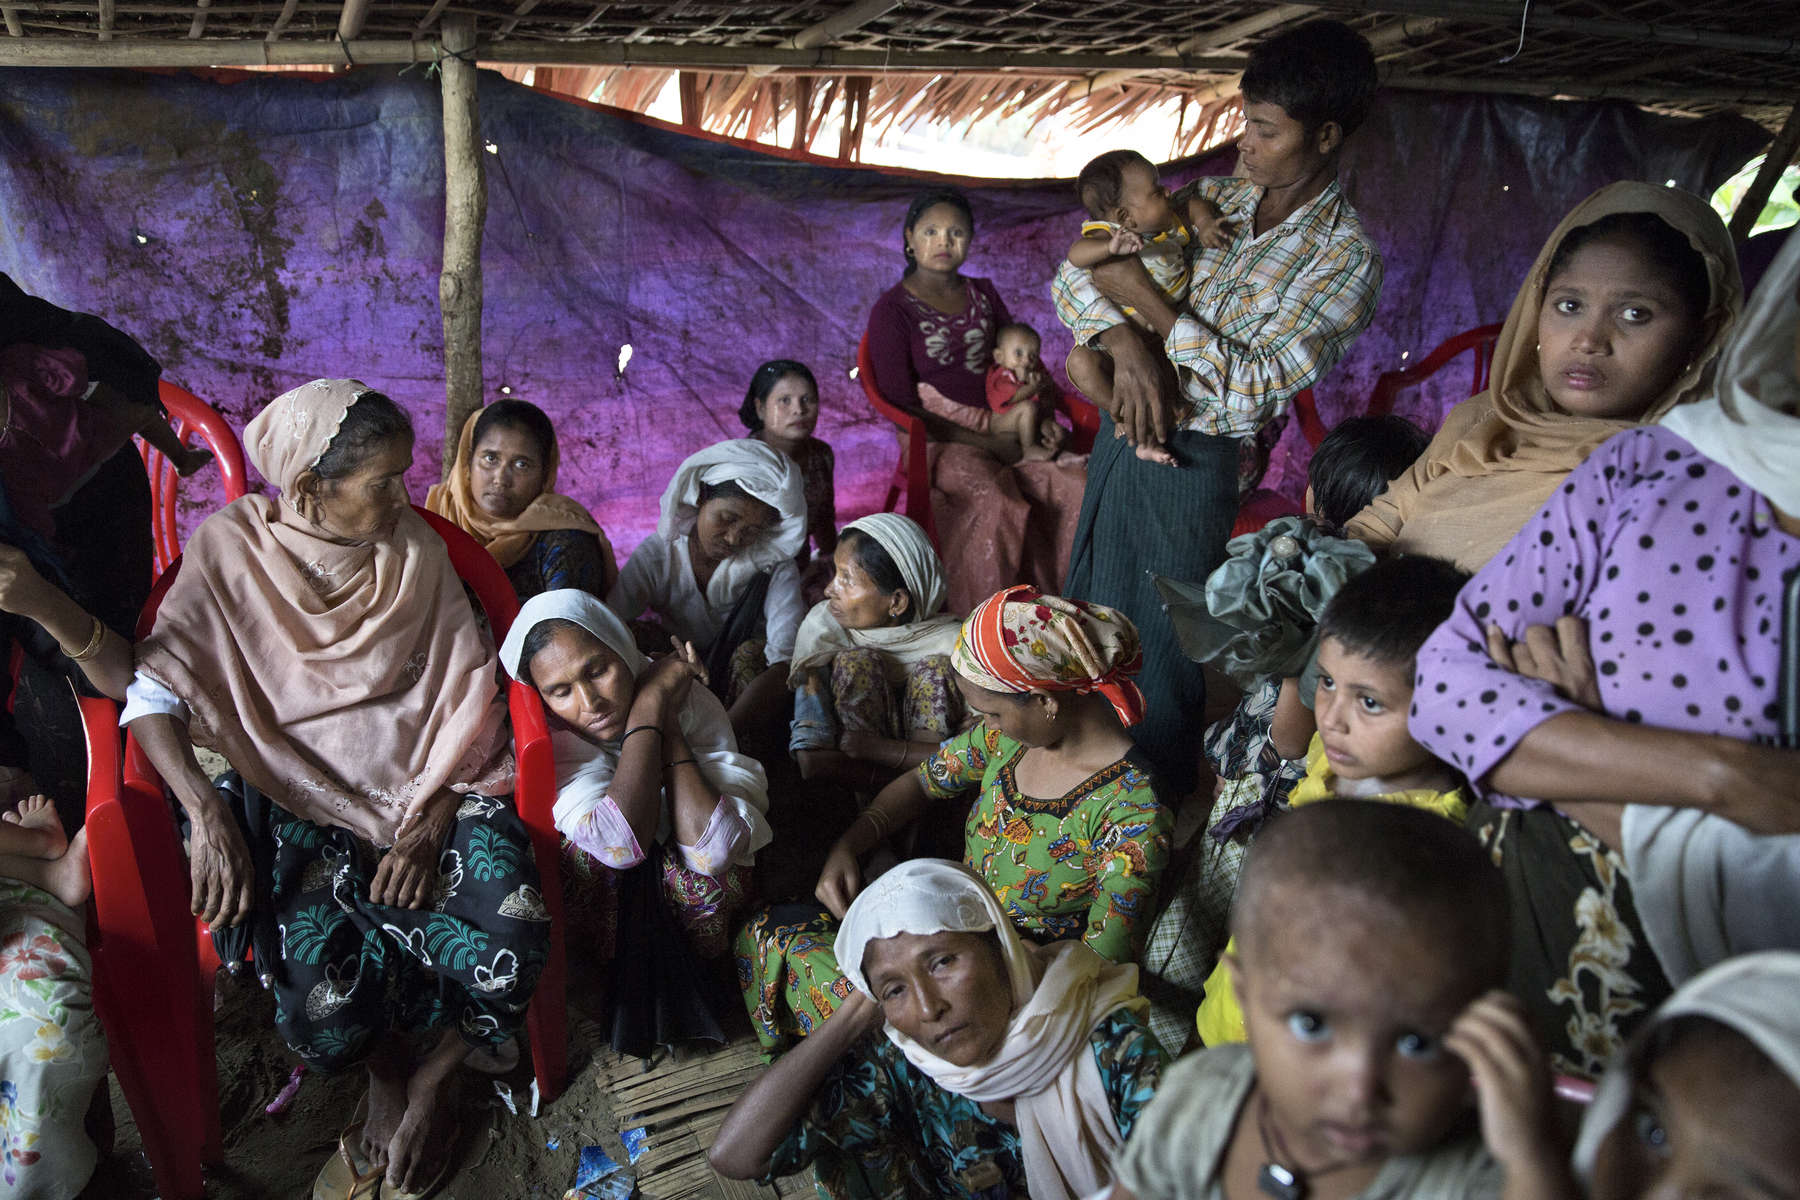 Women and children wait in line for medical care at the makeshift Aung Clinic which serves many Rohingya with a few dedicated staff giving free medical care. ( Photo by Paula Bronstein/ For The Washington Post )